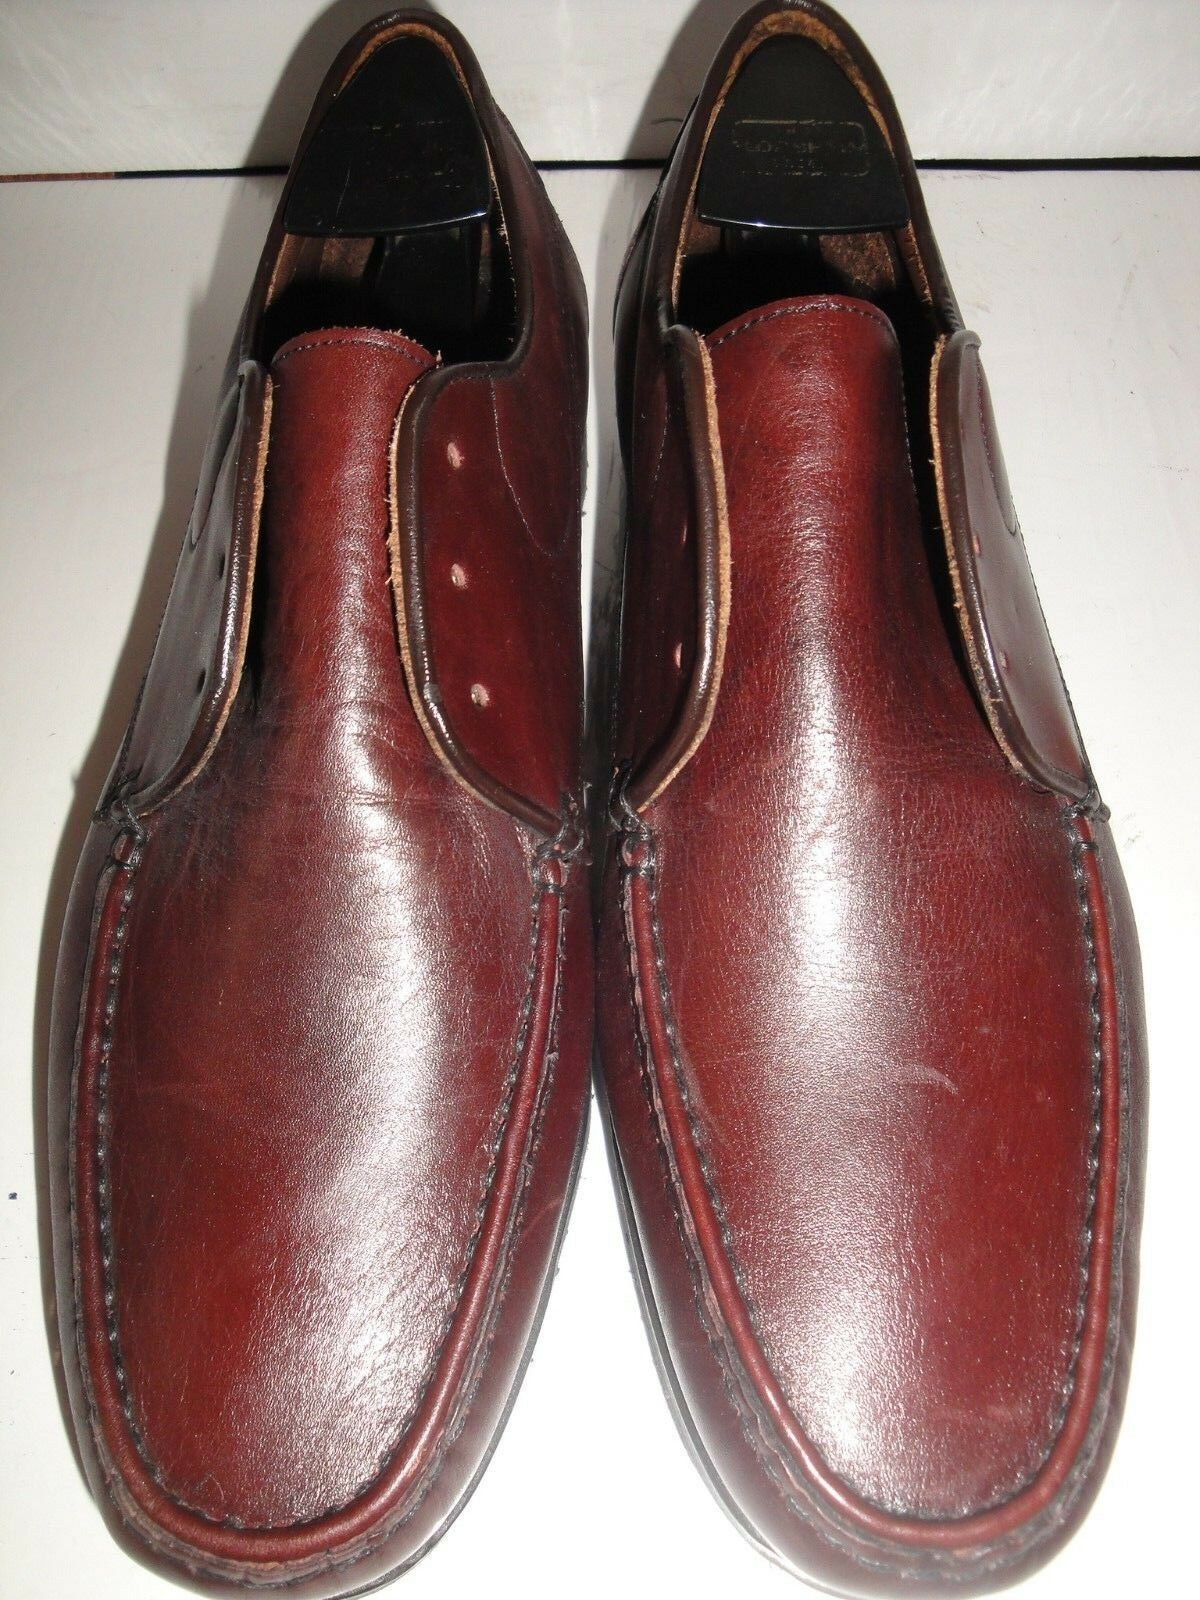 E. T. Wright Dark Brown Leather Oxfords Men's shoes Size 8.5C